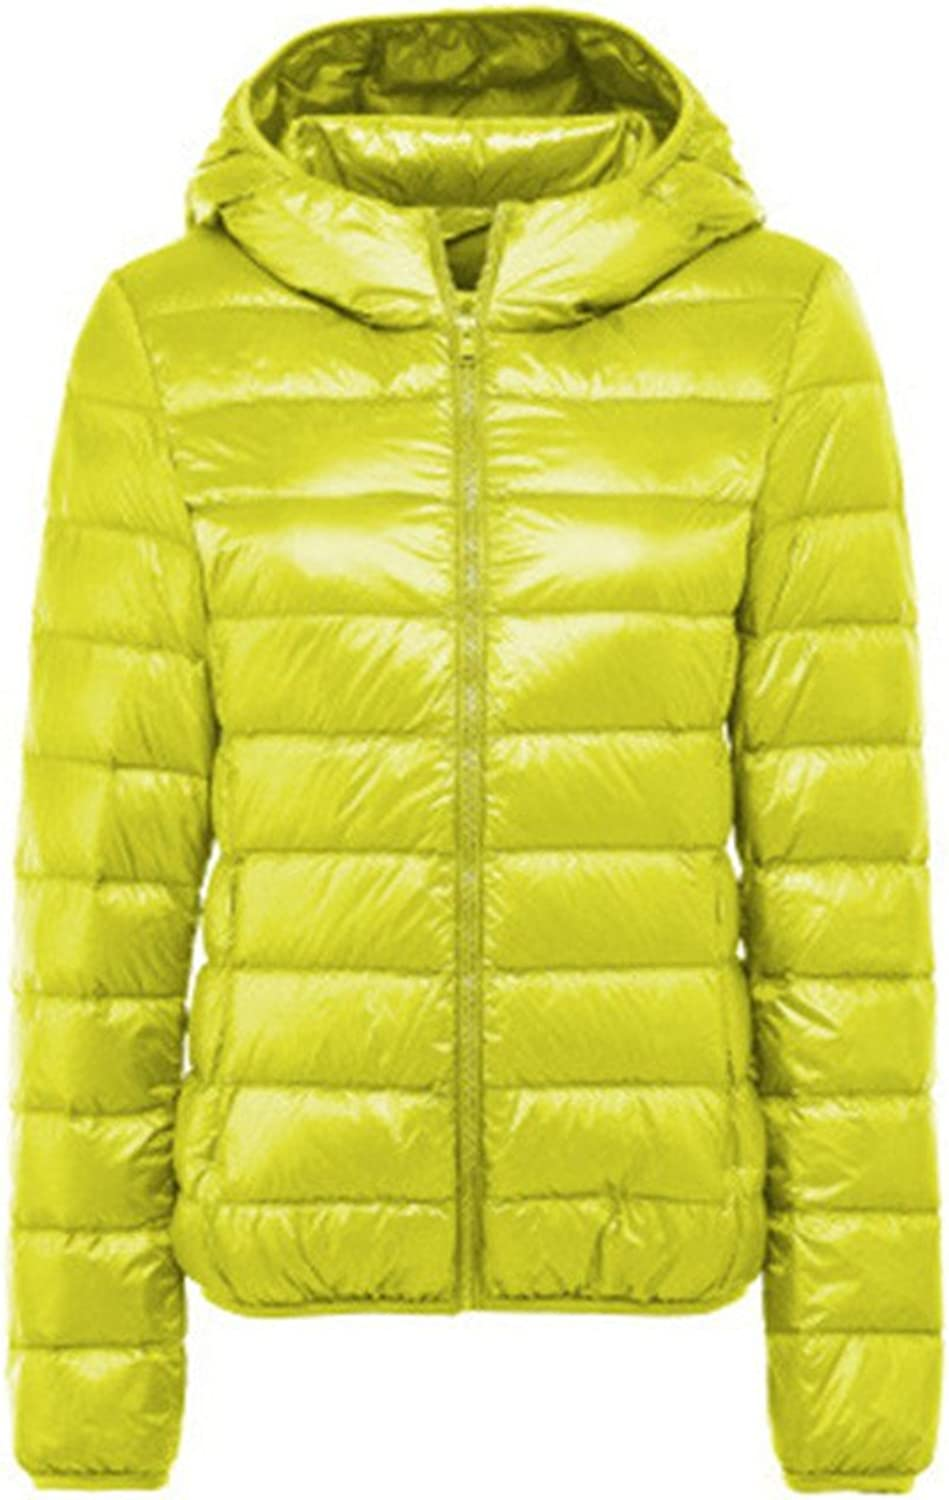 Basieng Women's UltraThin Down Jacket 90% Winter Down Jacket Jacket Chain